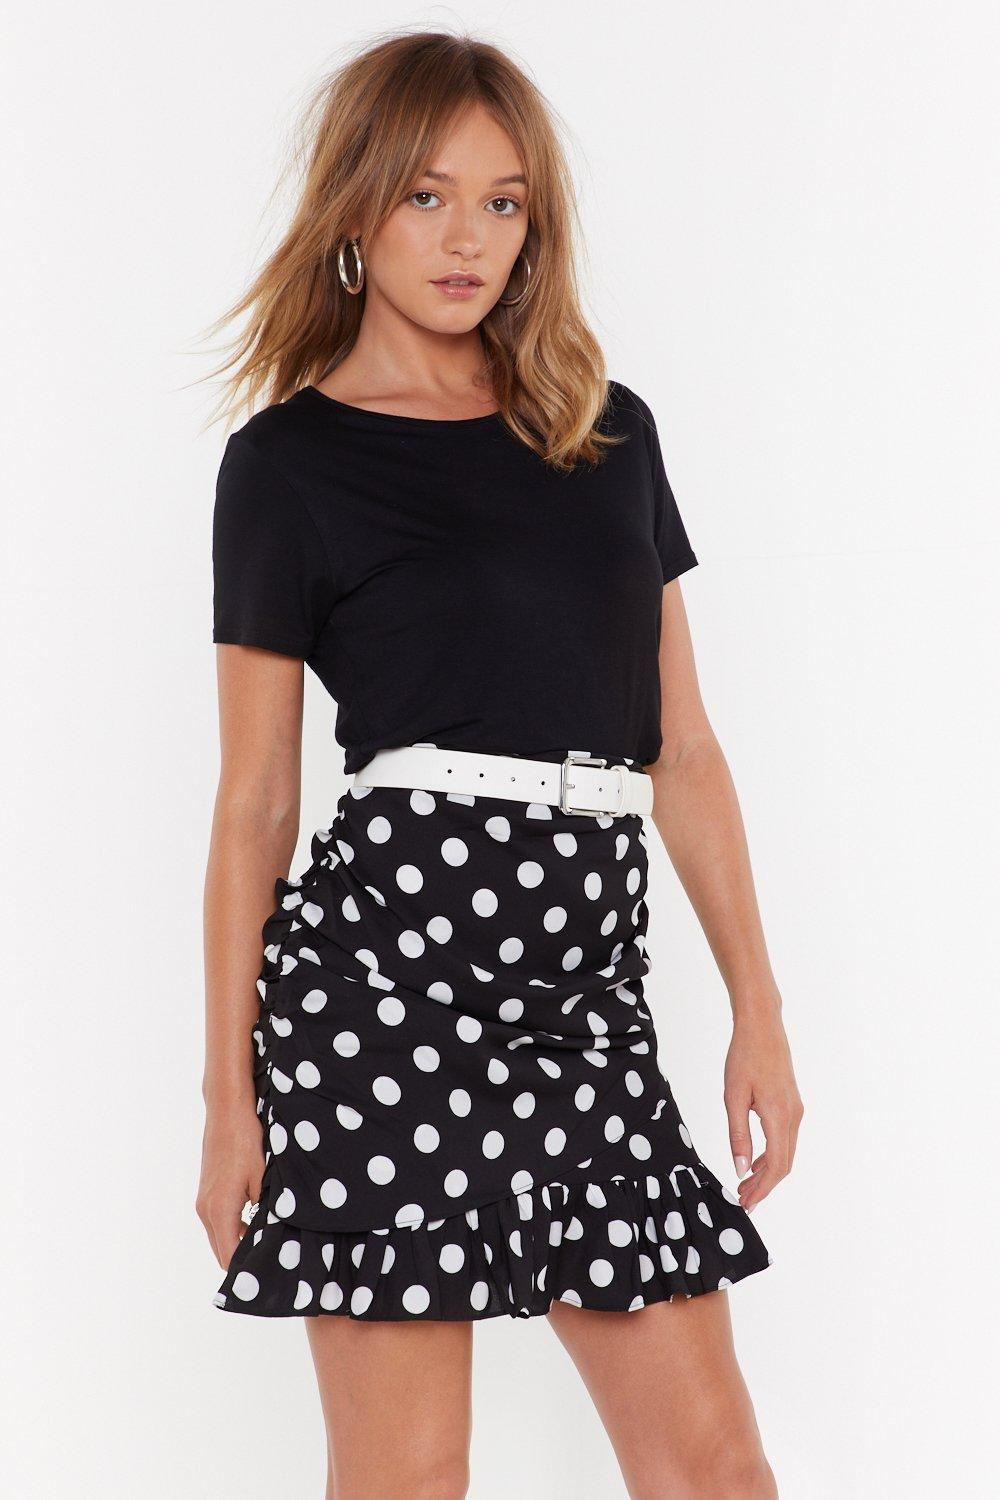 Only One Got Spot Ruffle Hem Mini Skirt by Nasty Gal